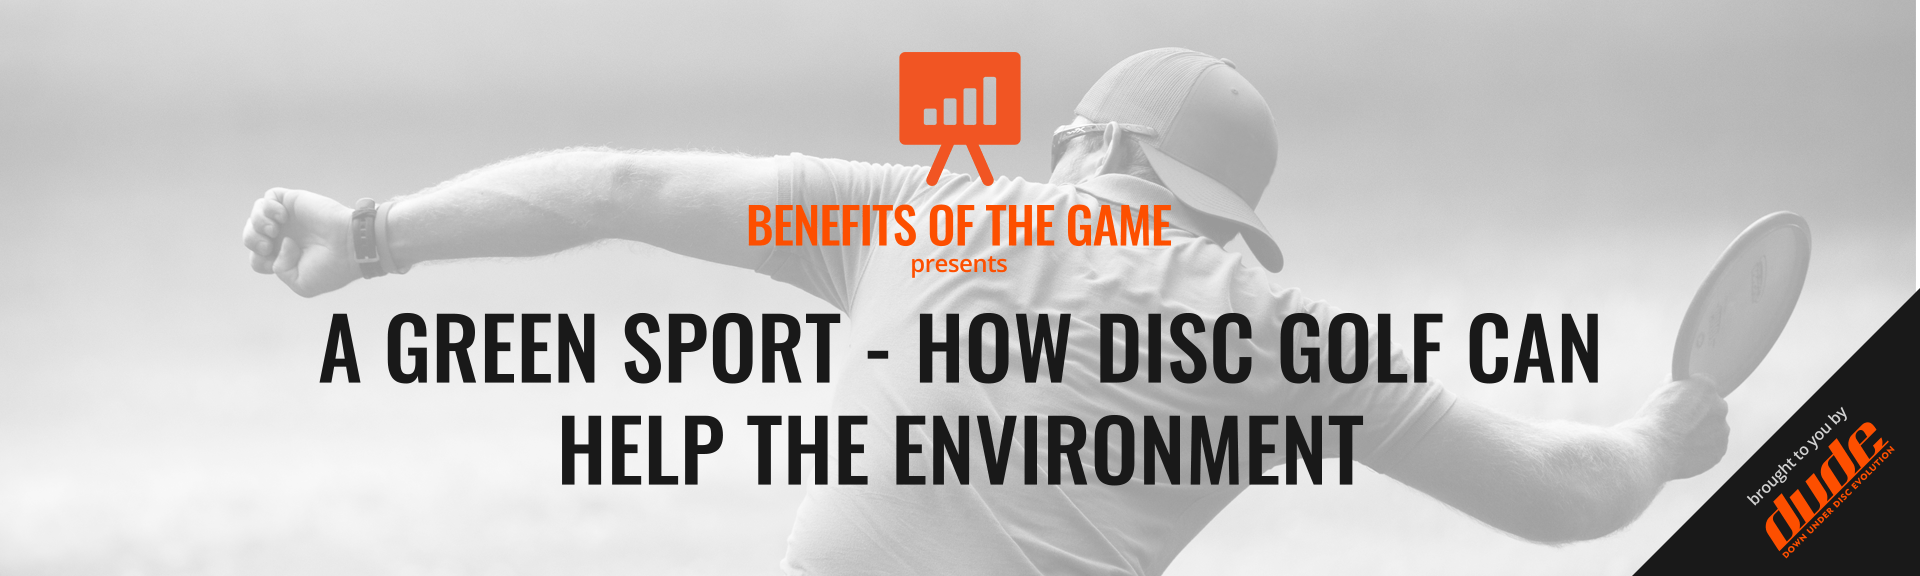 Dude Clothing Benefits of the Game A green sport how disc golf can help the environment